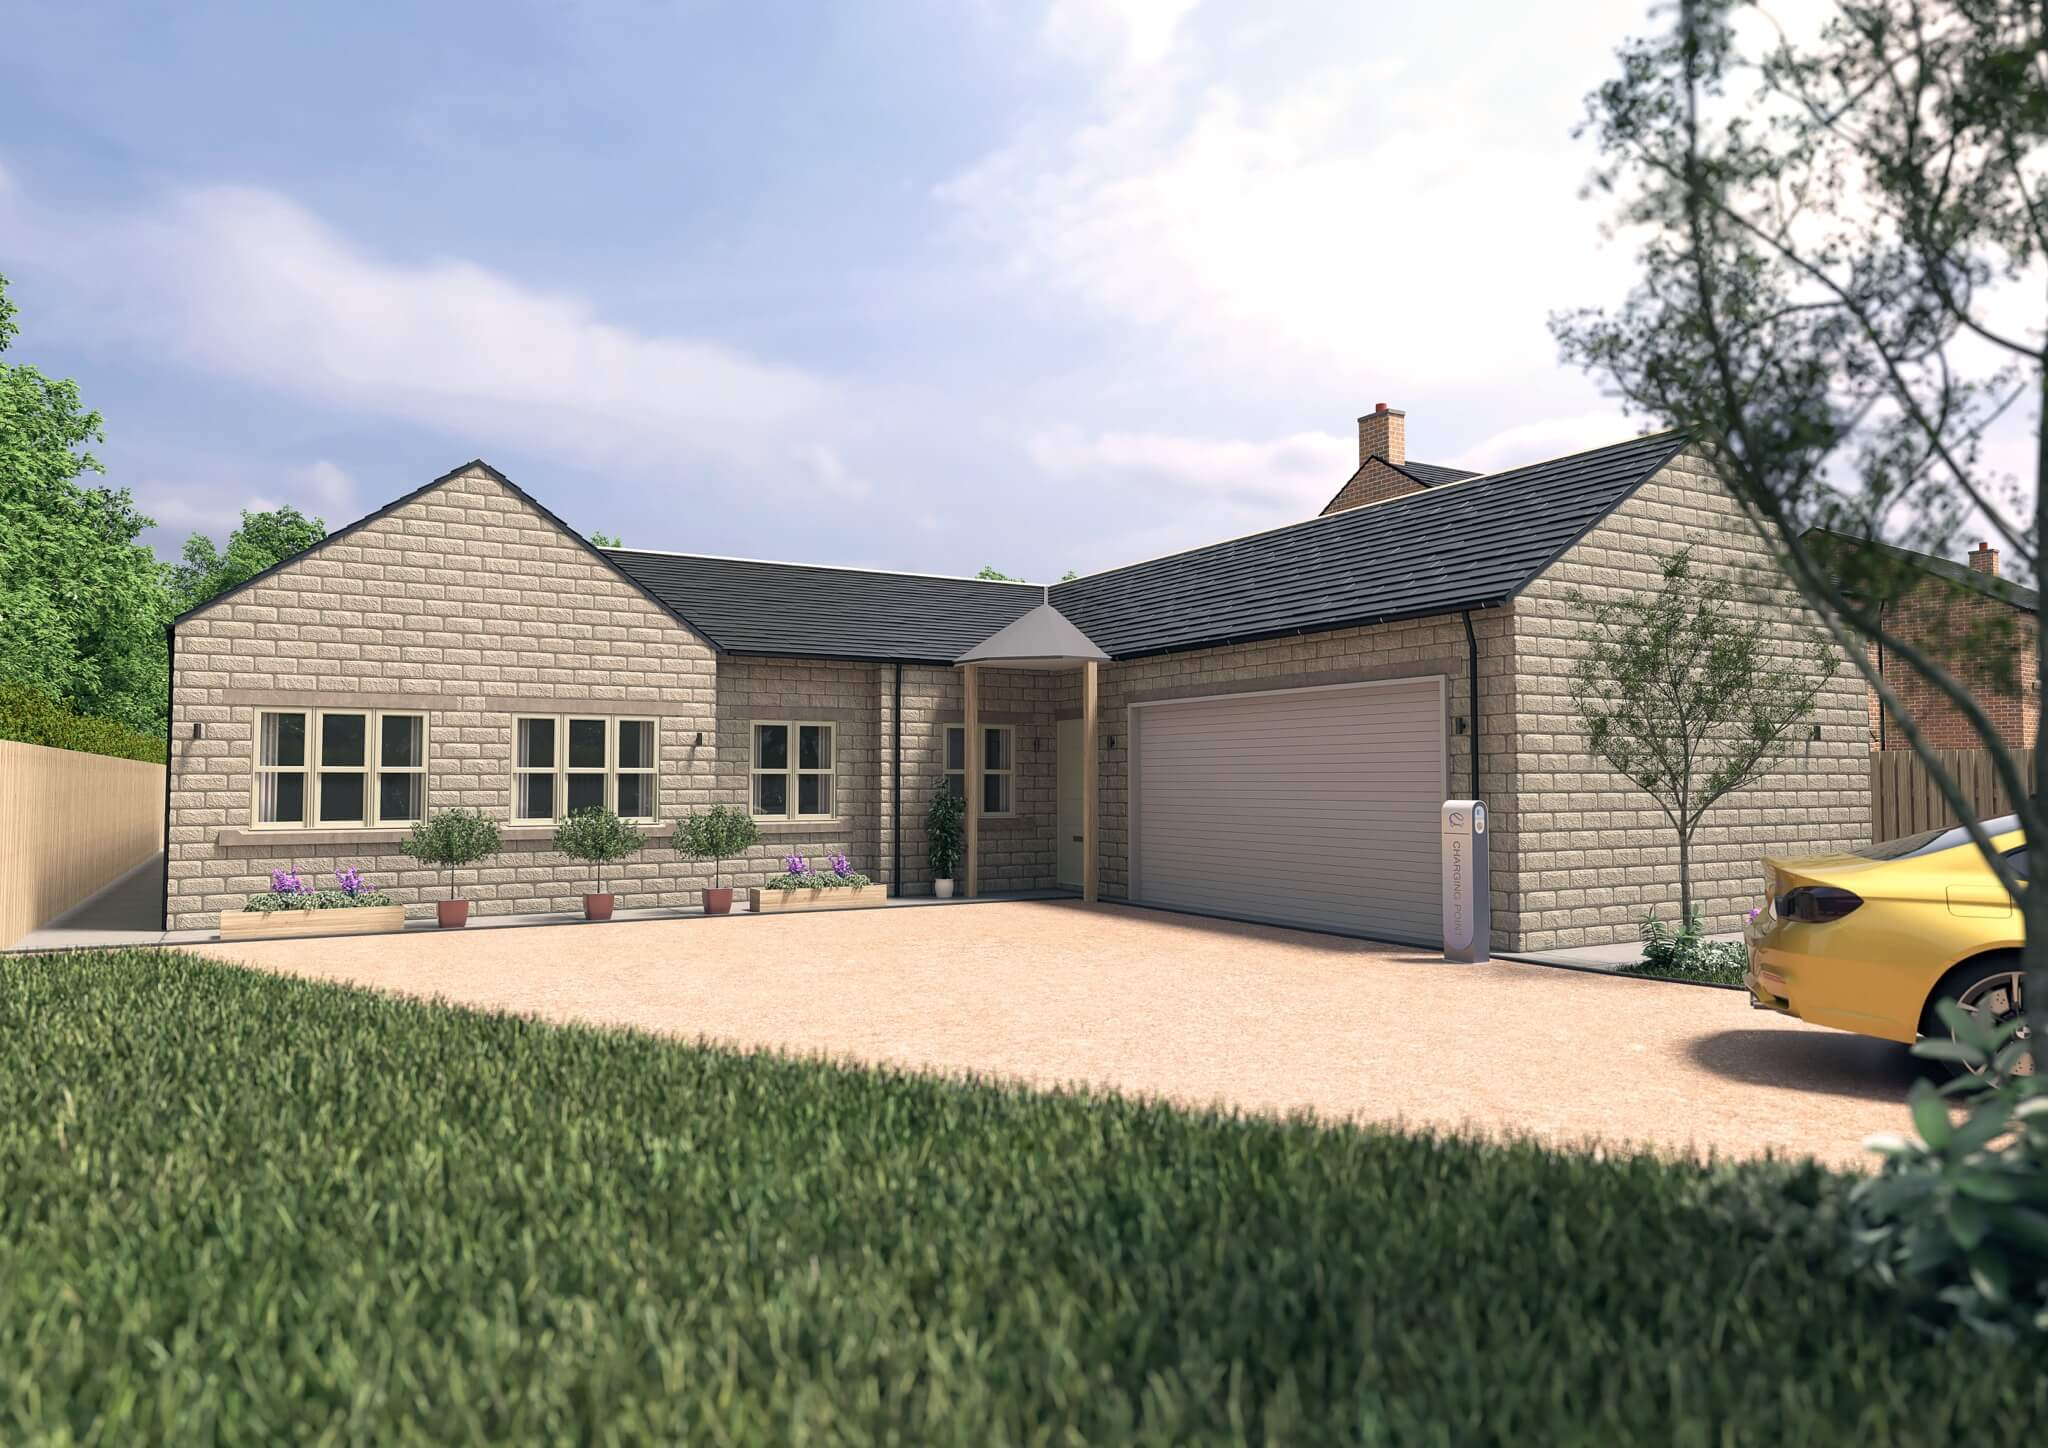 Harmby Homes Barley Court Staveley rear view